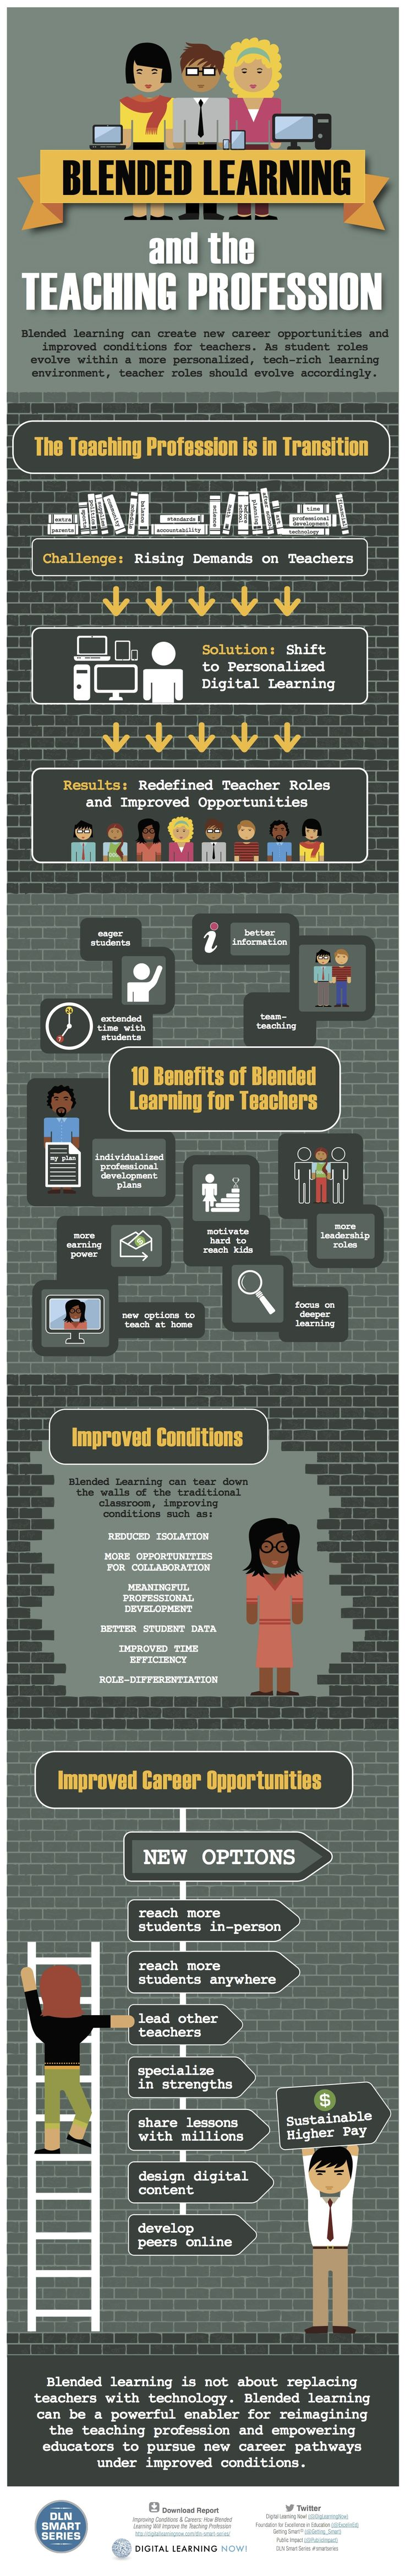 Blended Learning & Teaching Infographic: Blended learning is not about replacing teachers with technology. Blended learning can be a powerful enabler for reimagining the teaching profession and empowering educators to pursue new career pathways under improved conditions.